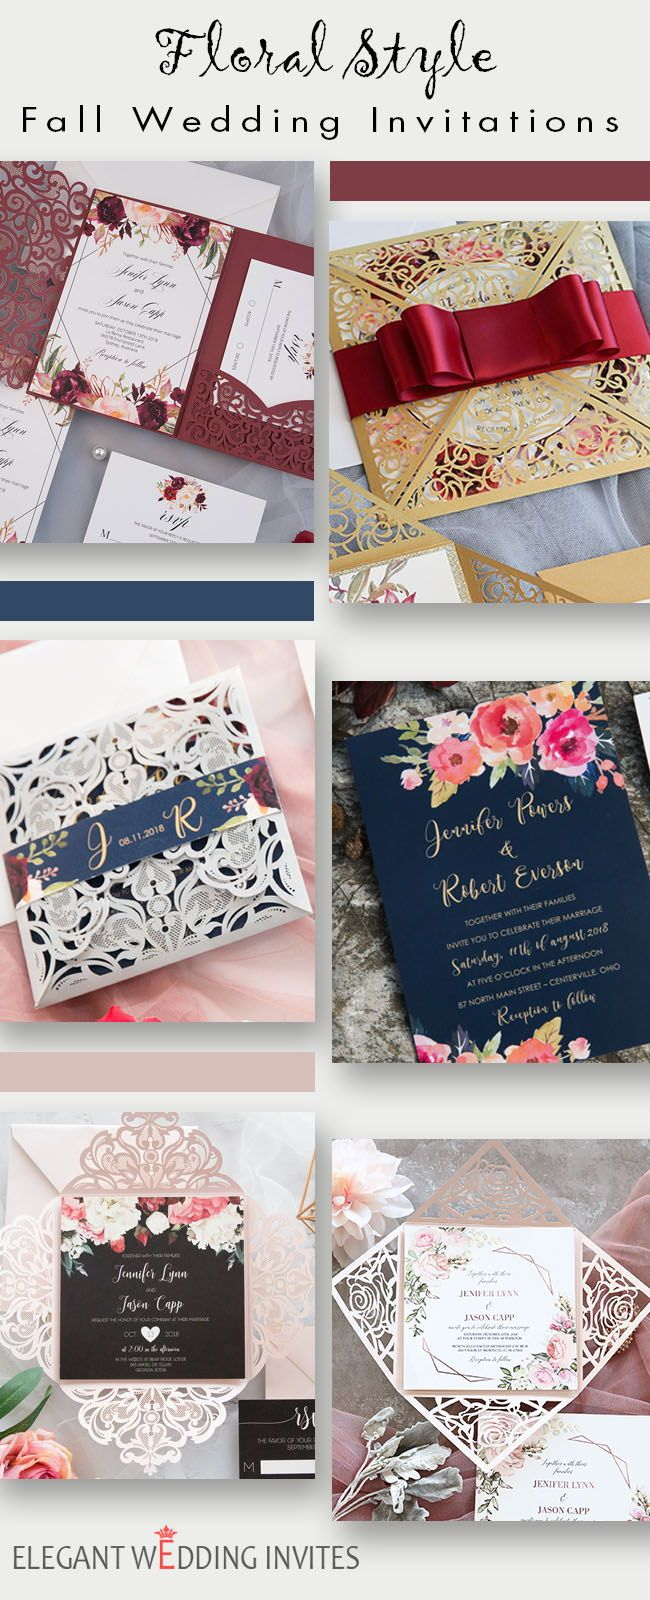 Trendy Floral Wedding Invitations For Fall Brides: Inexpensive Fall Wedding Invitations At Websimilar.org